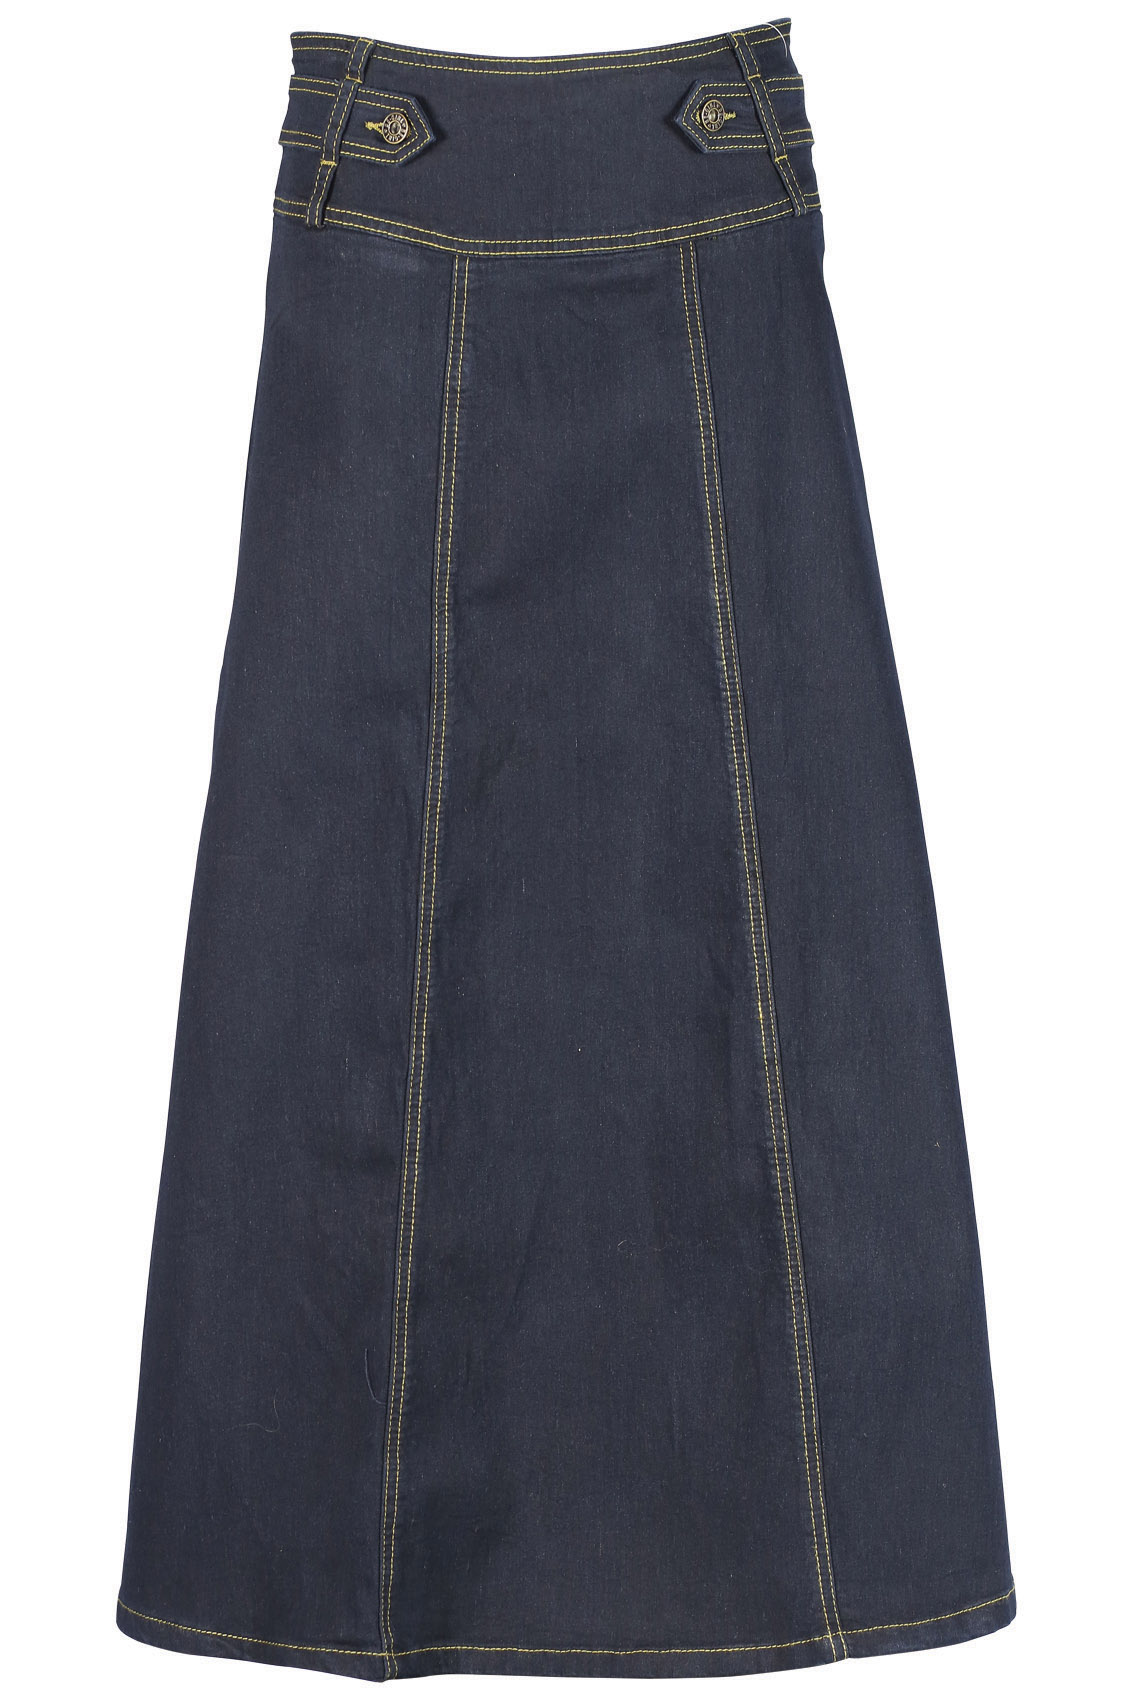 Long Jean Skirt | Modest Long Black Denim Skirts Sizes 6-18